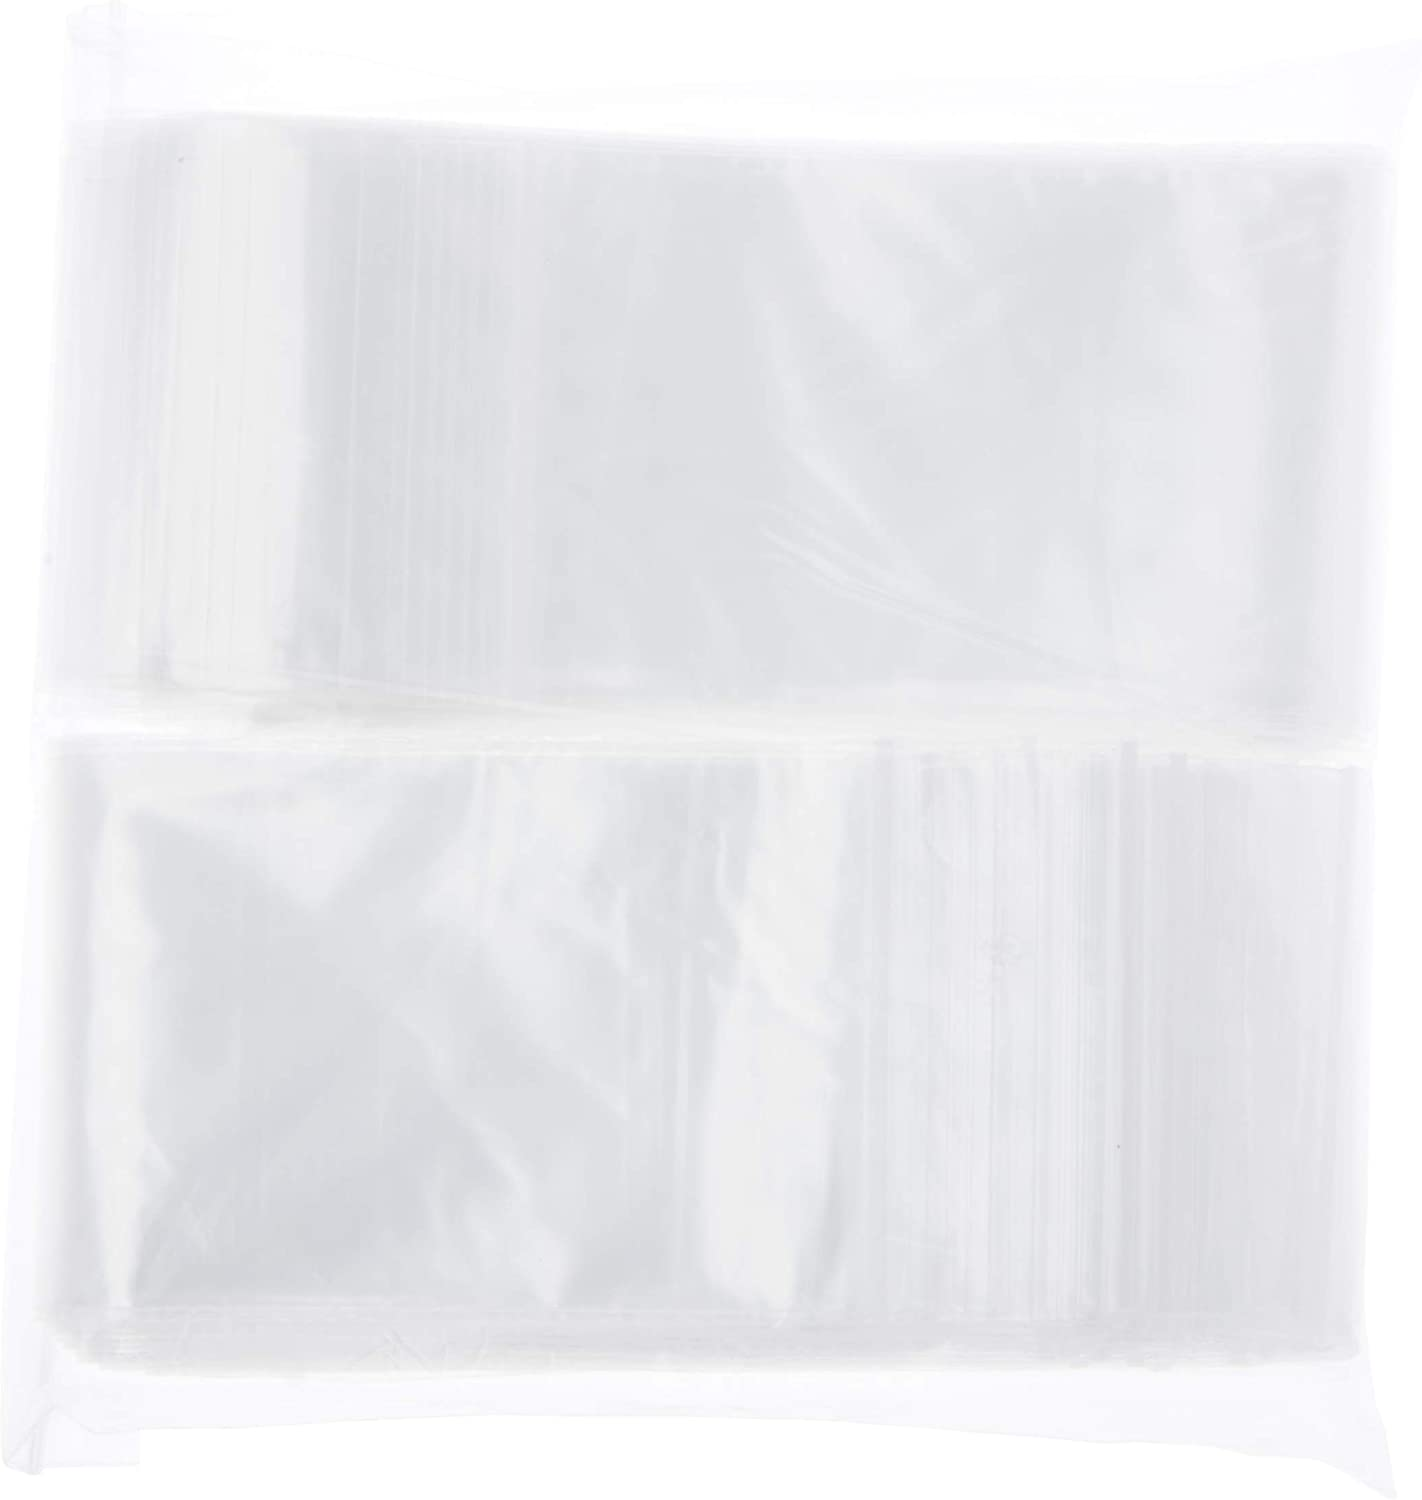 1000-2x10 Clear Poly Plastic Bags Packaging Shipping Lay-flat Baggie 2 Mil FDA